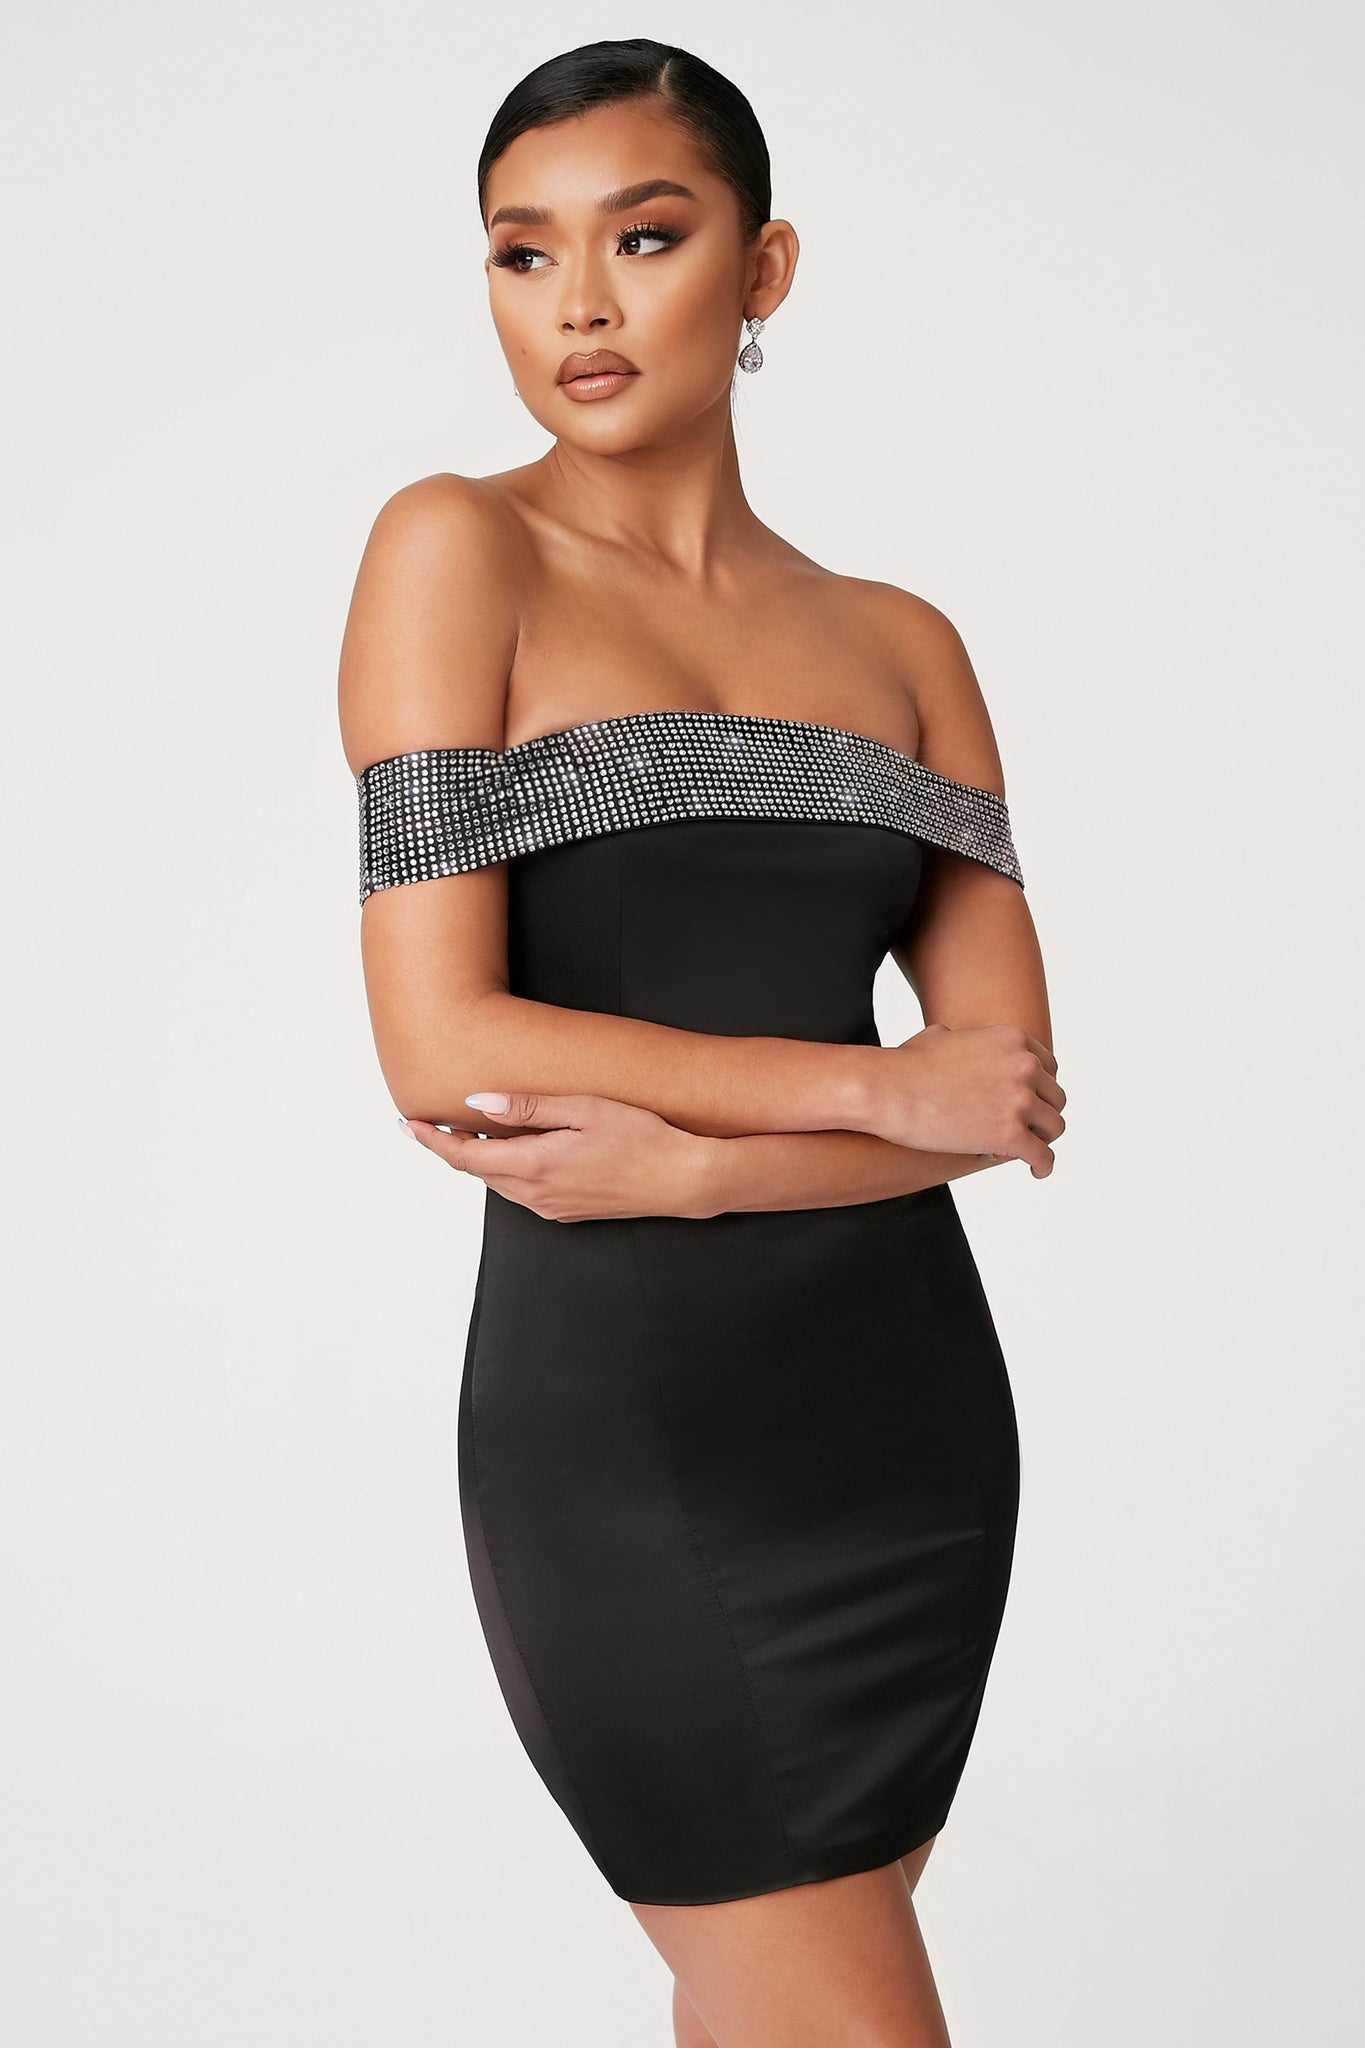 Justina Off The Shoulder Diamante Mini Dress - Black - MESHKI